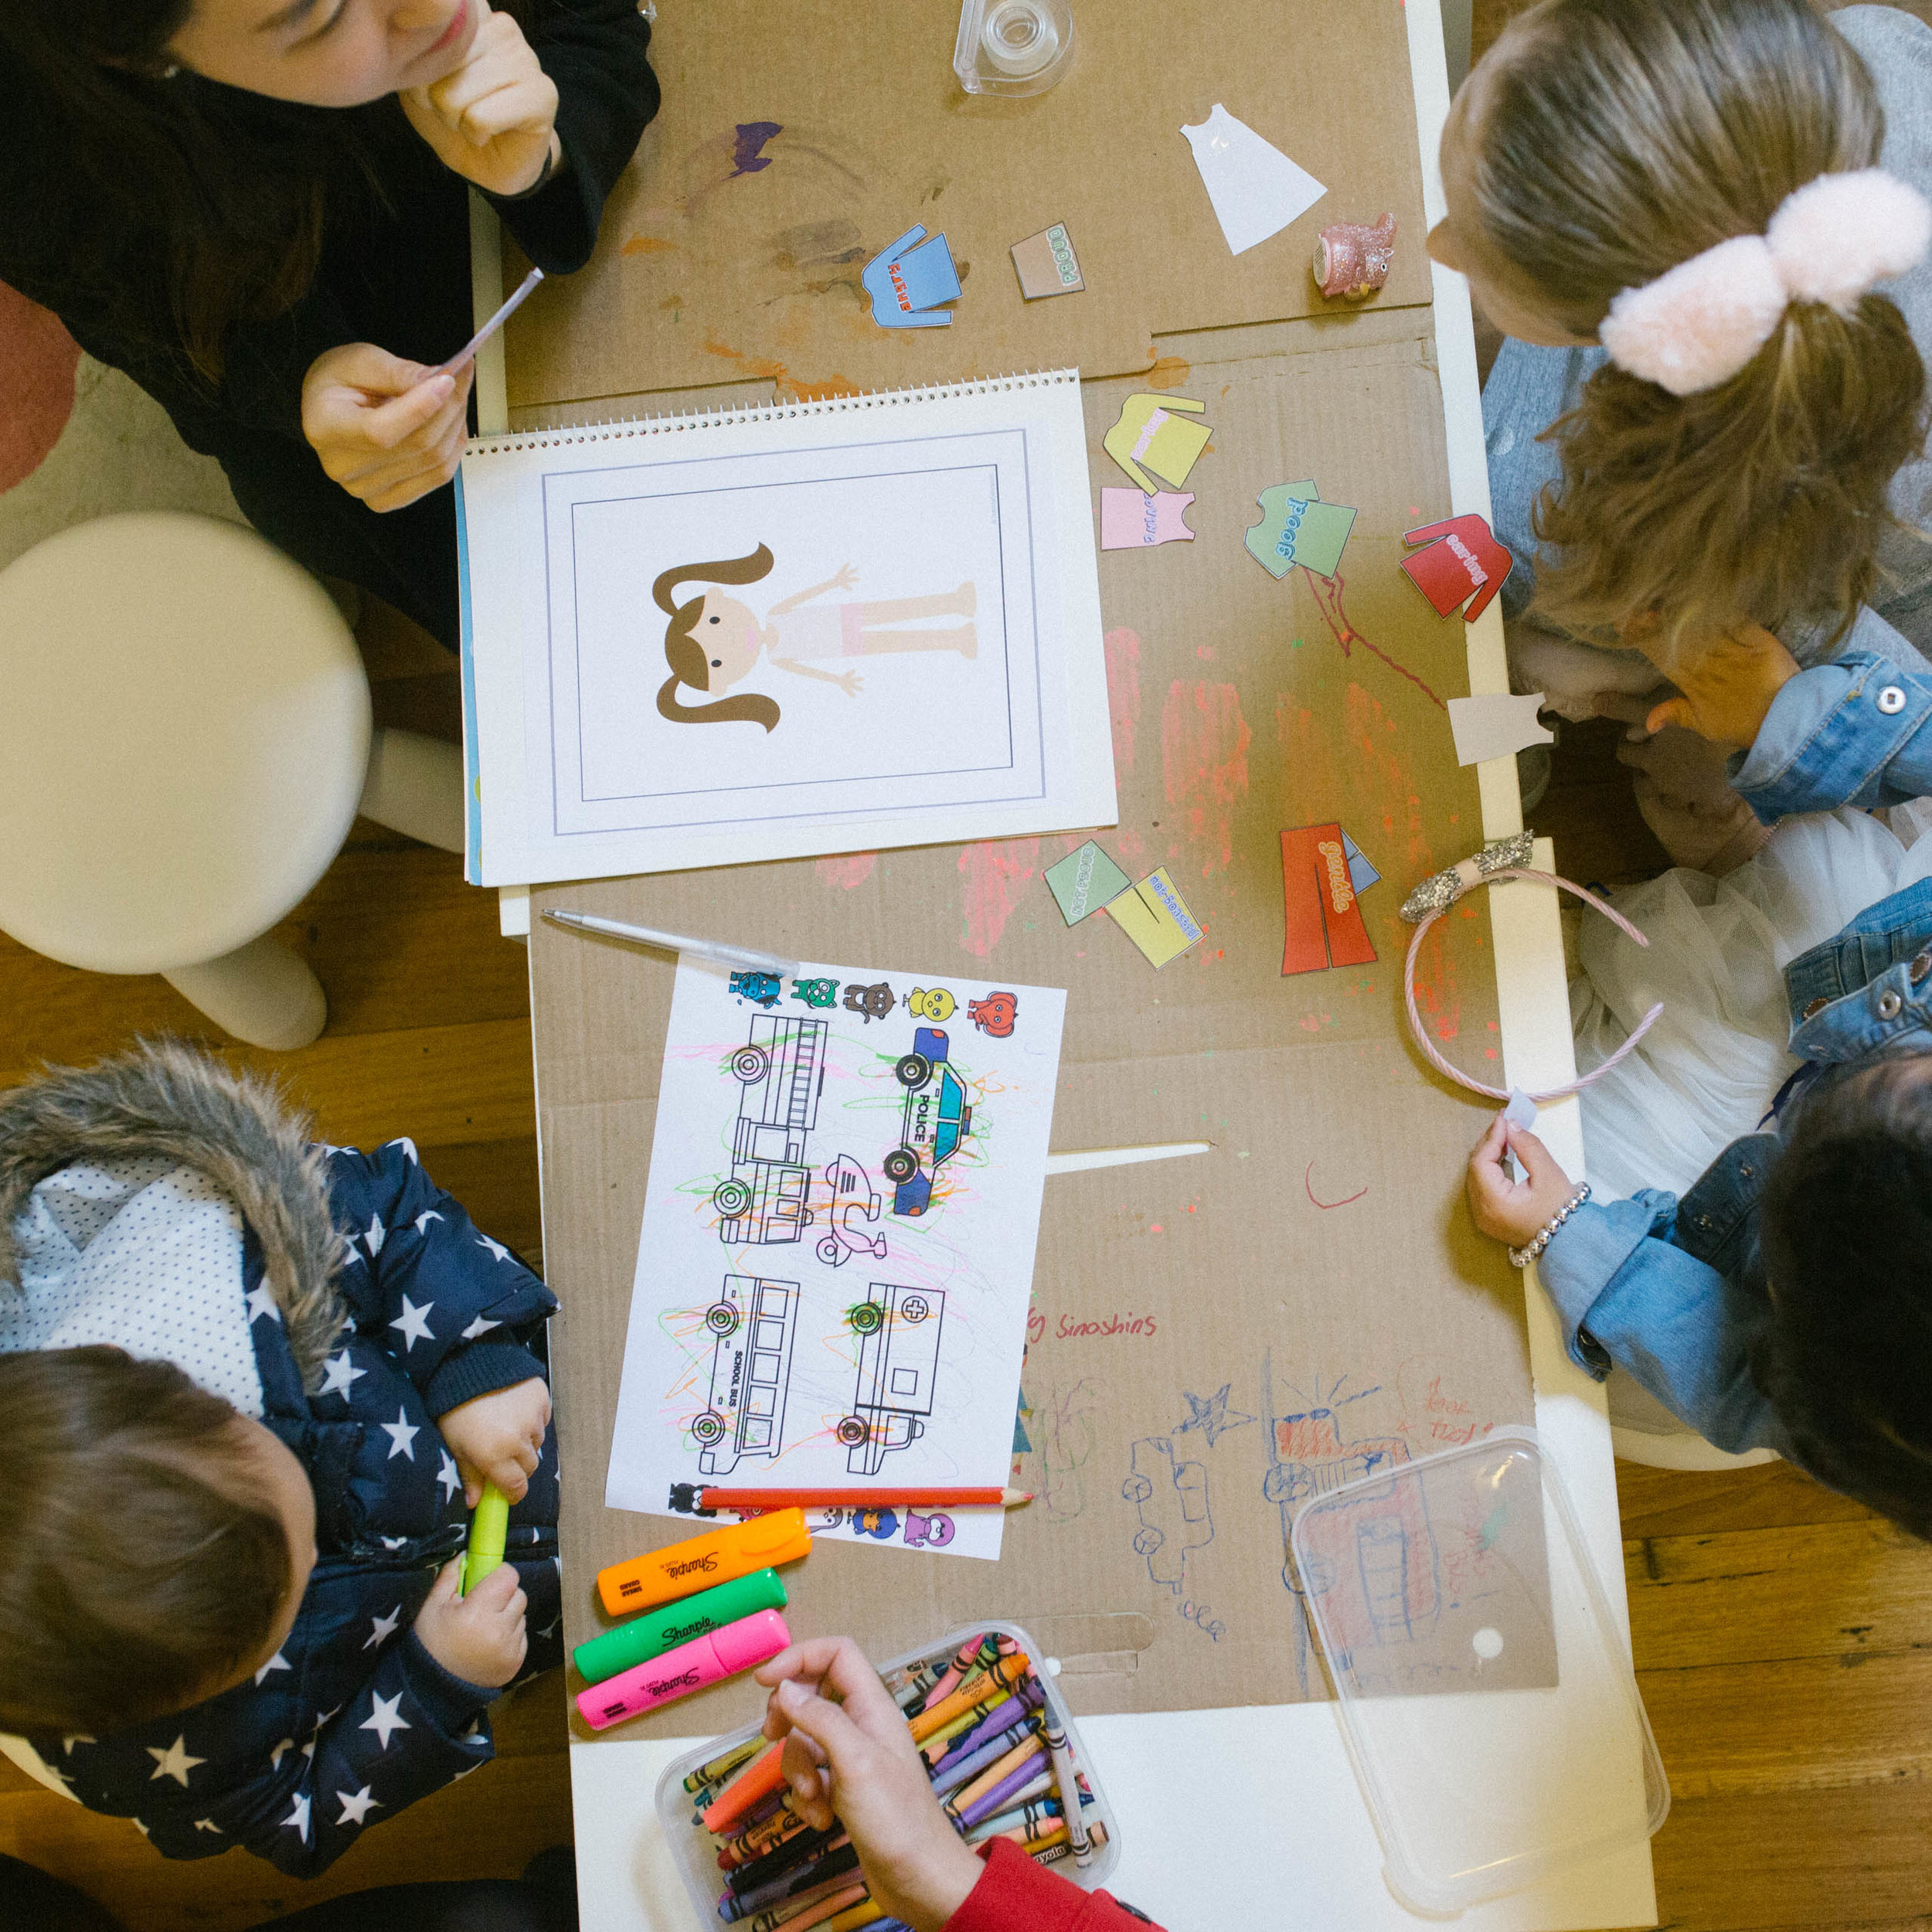 Jesus loves kids - And so do we! At Chapel Hill we seek to share Jesus' love for children by providing a safe and fun Kids Church program on Sundays for toddlers through to Year 6.